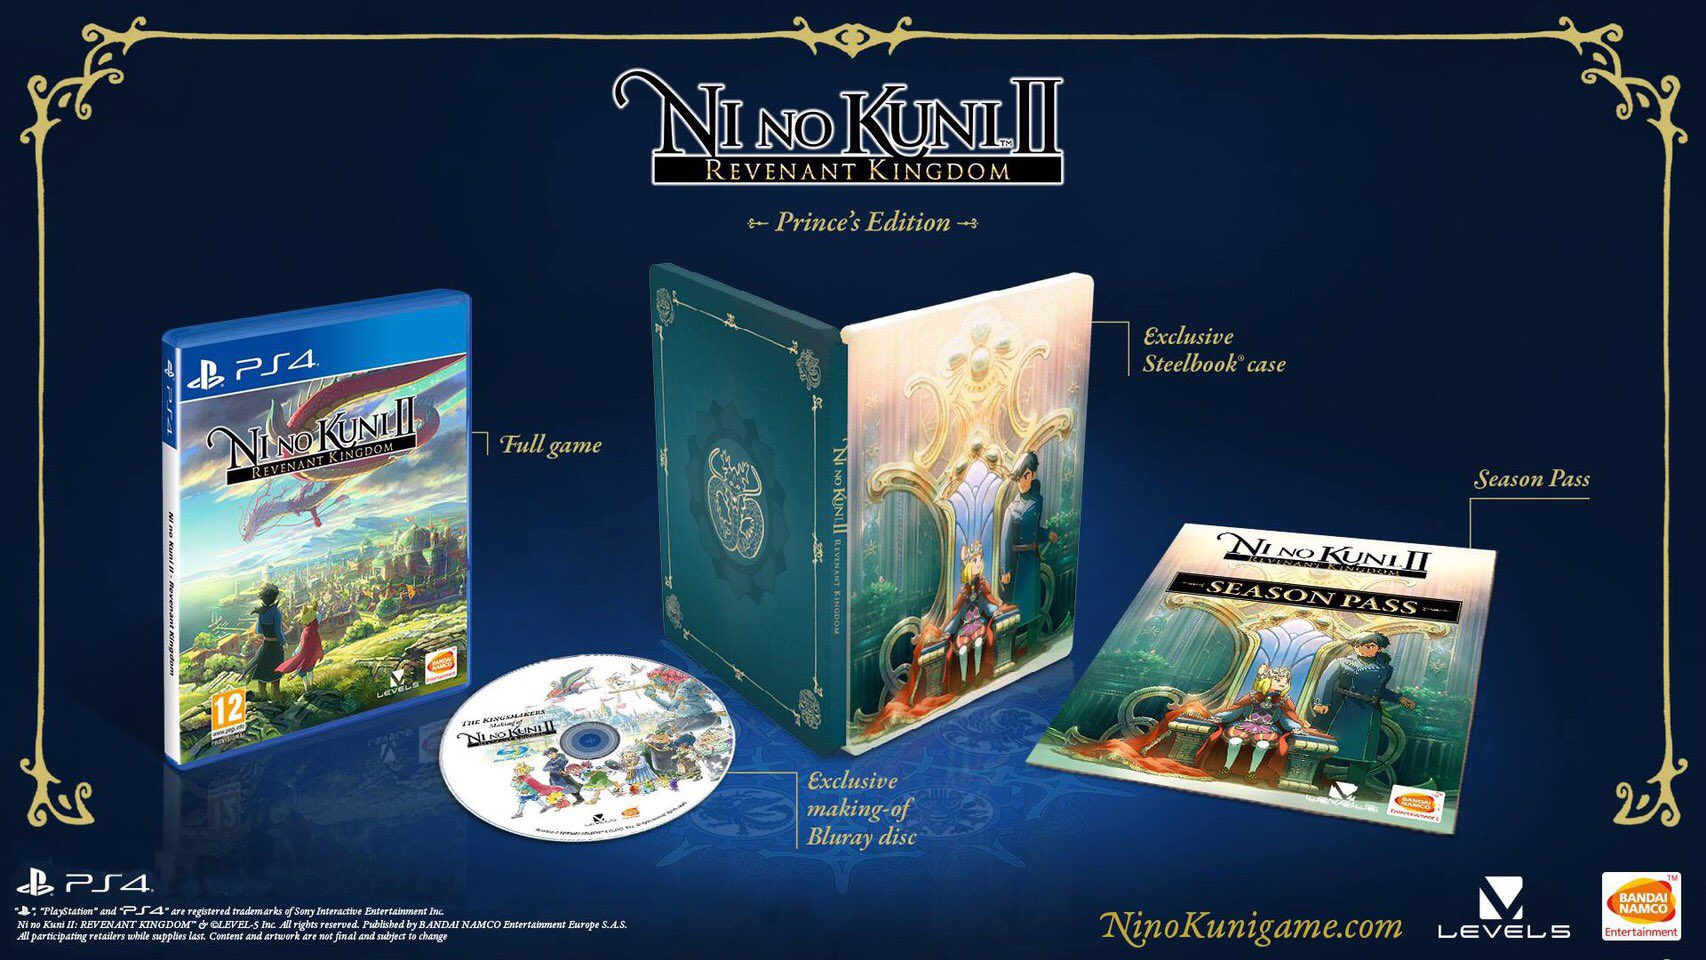 Ni No Kuni 2 Special Editions and Season Pass Revealed